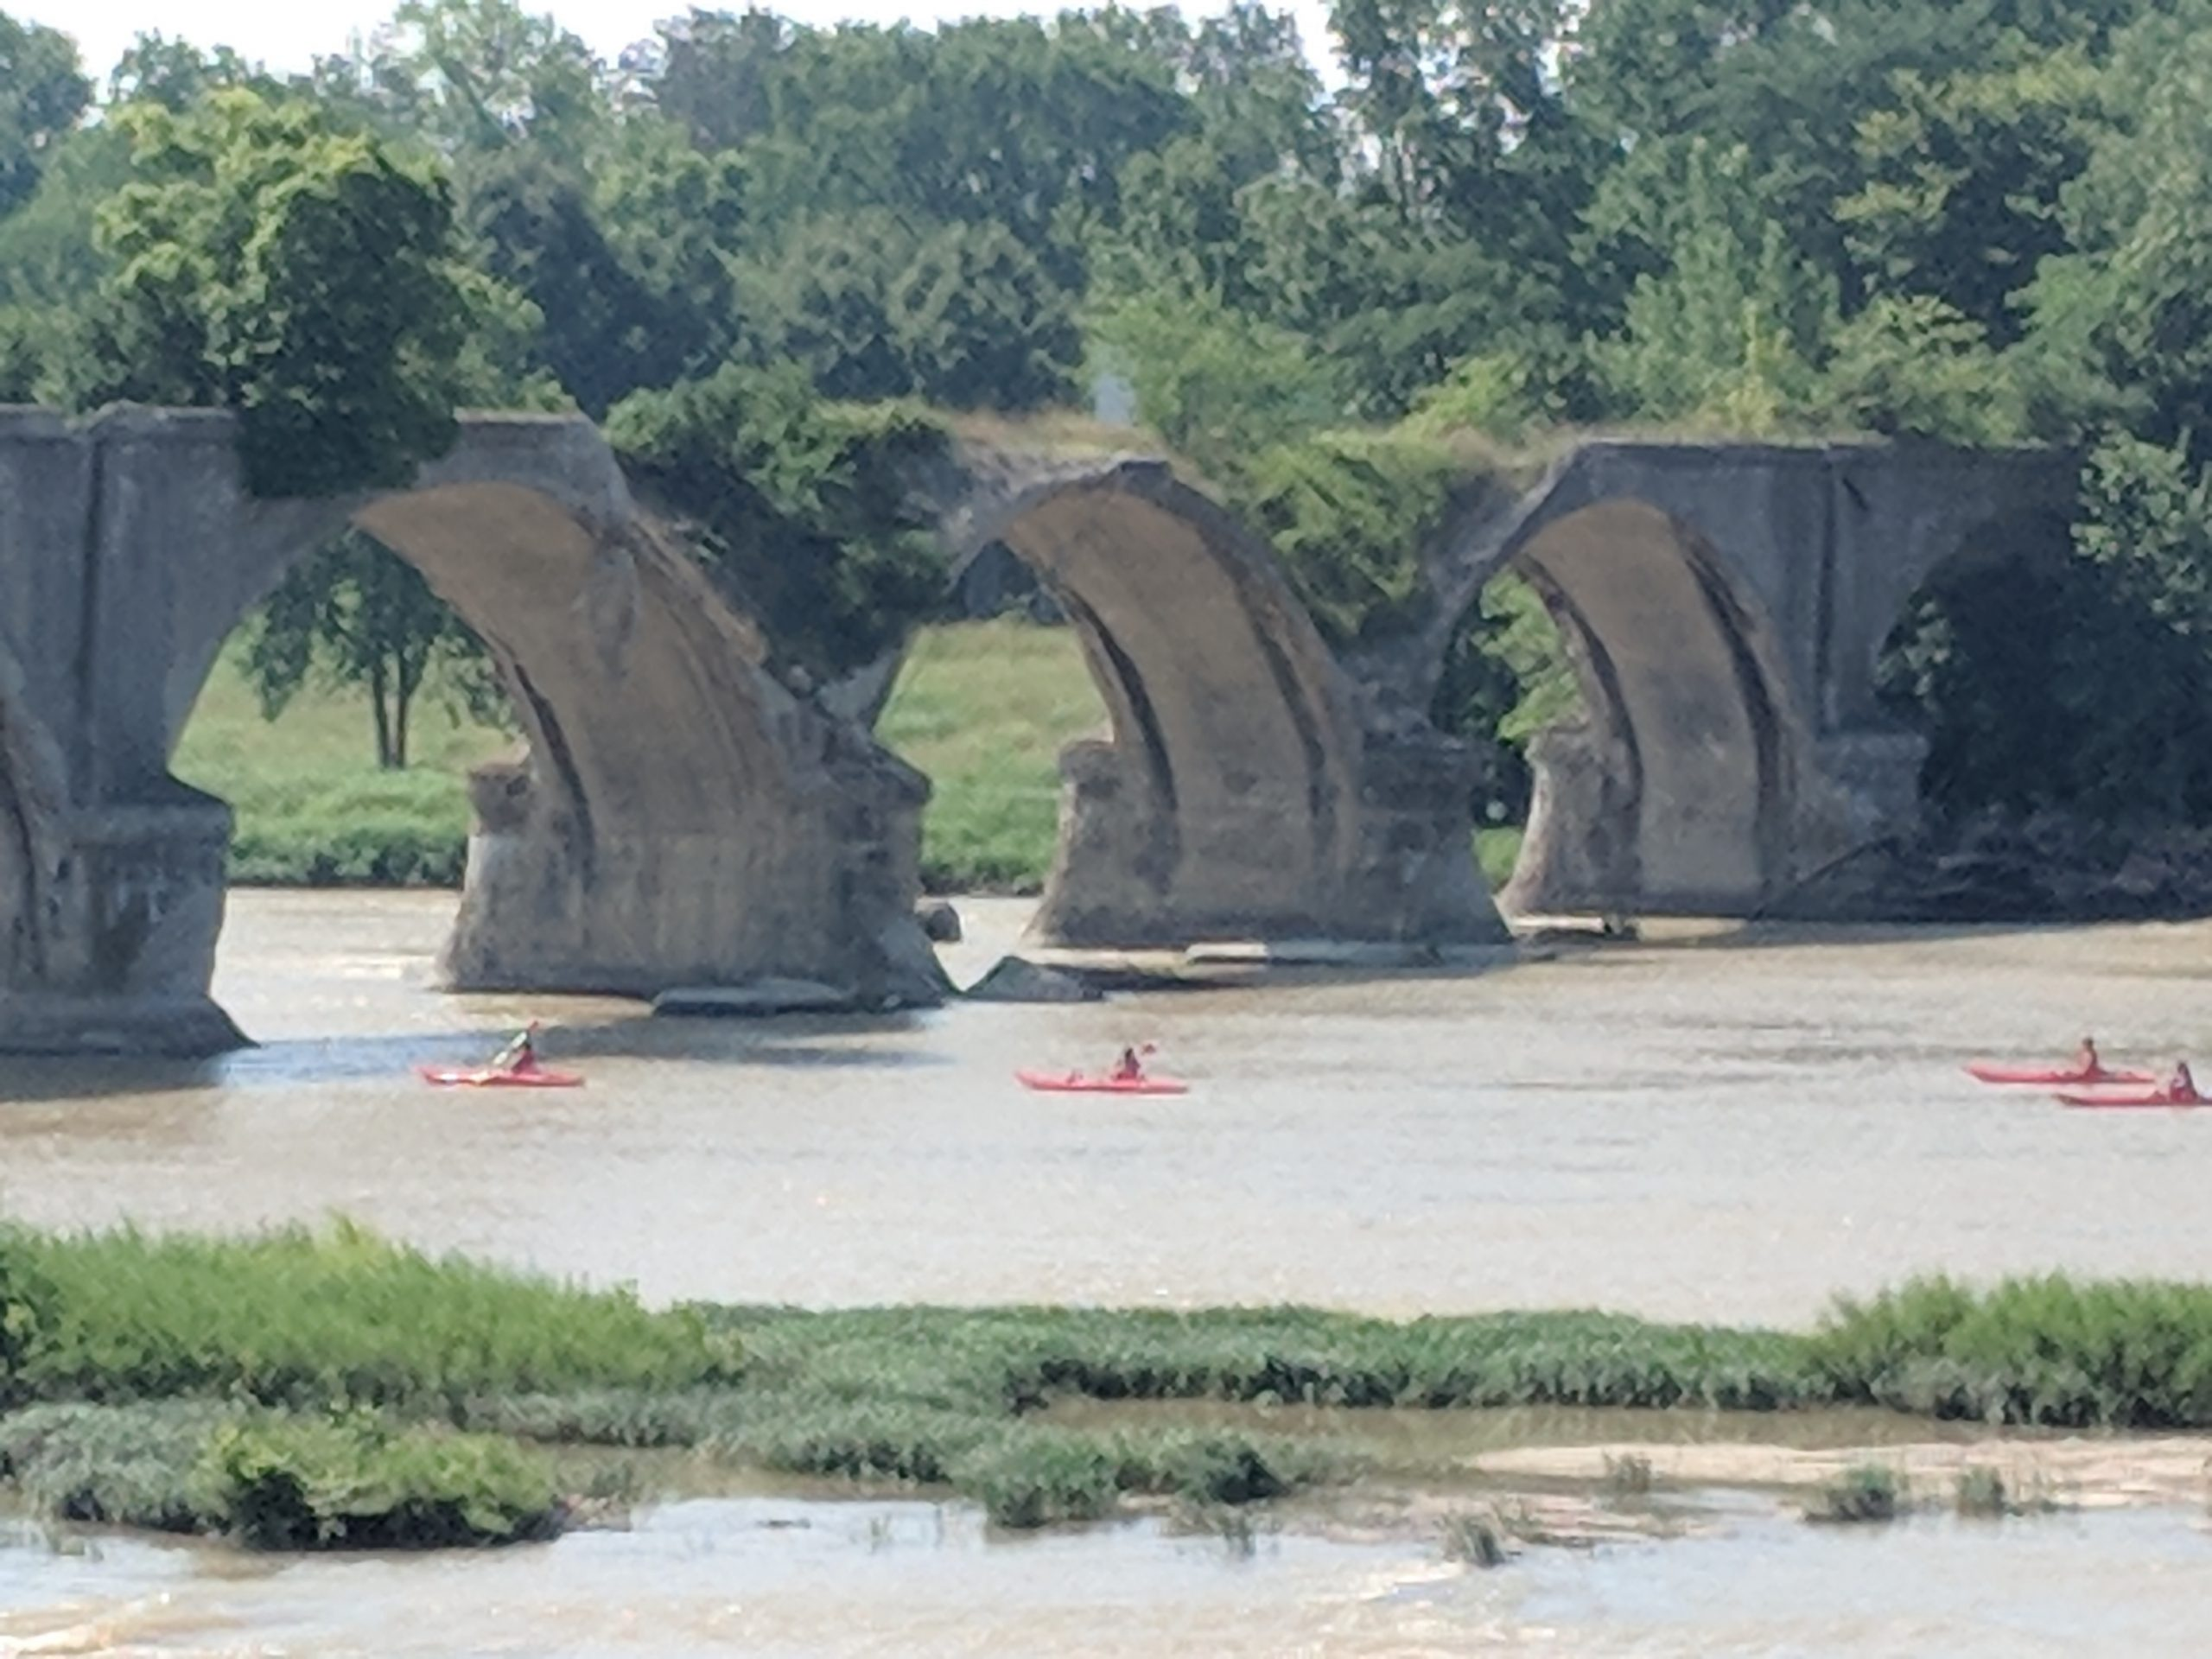 Maumee River Report-  29 July, 2019- Follow the Red Kayaks.